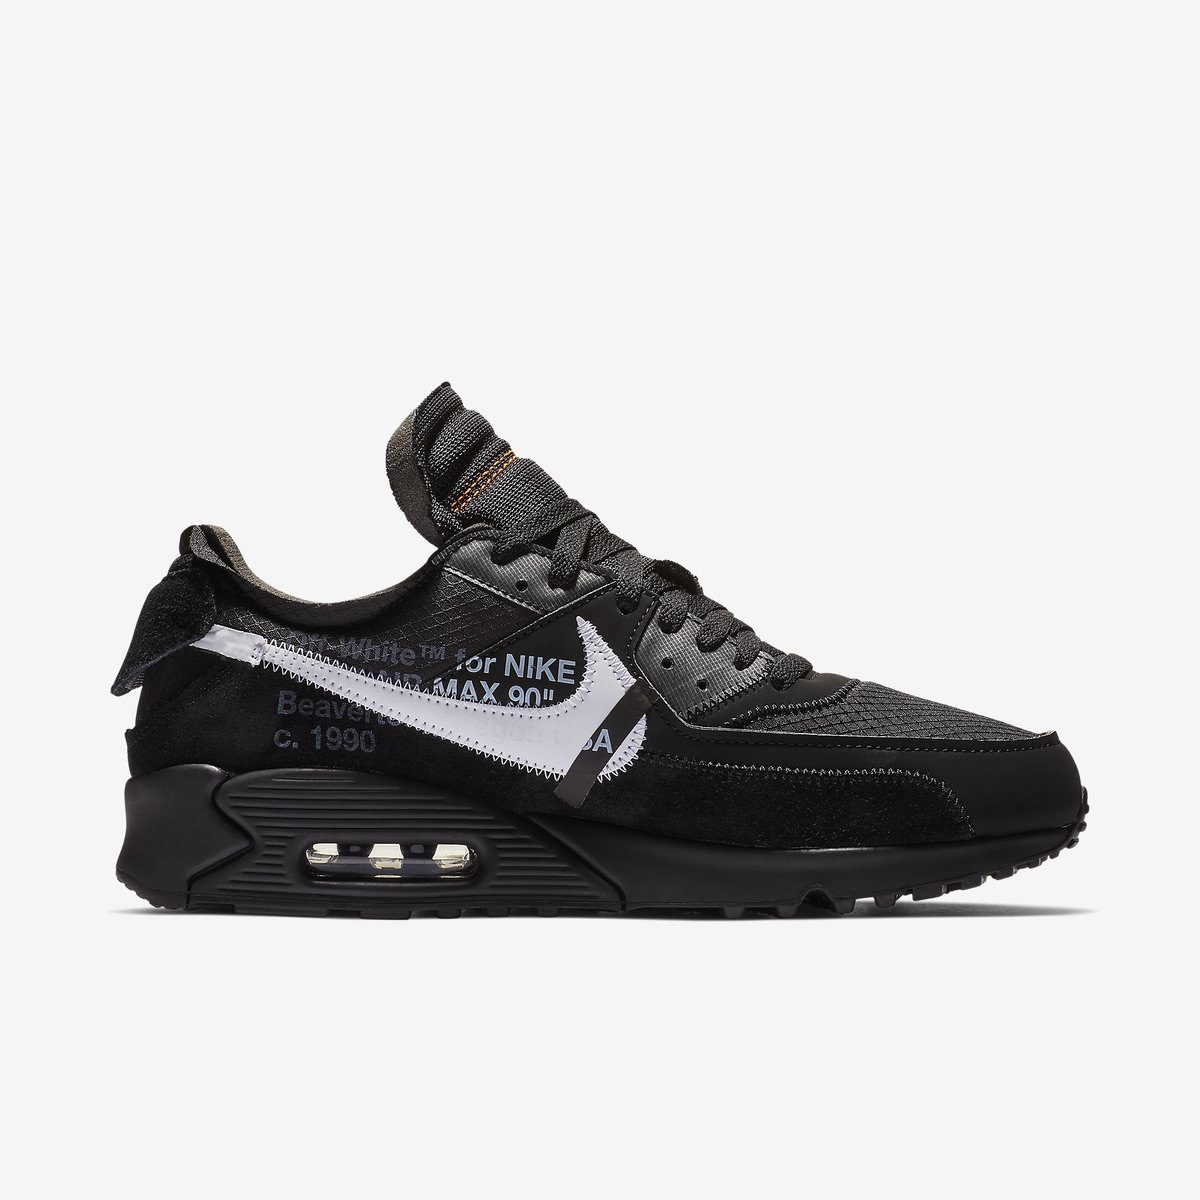 off-white-nike-air-max-90-2018-black-release-20190117